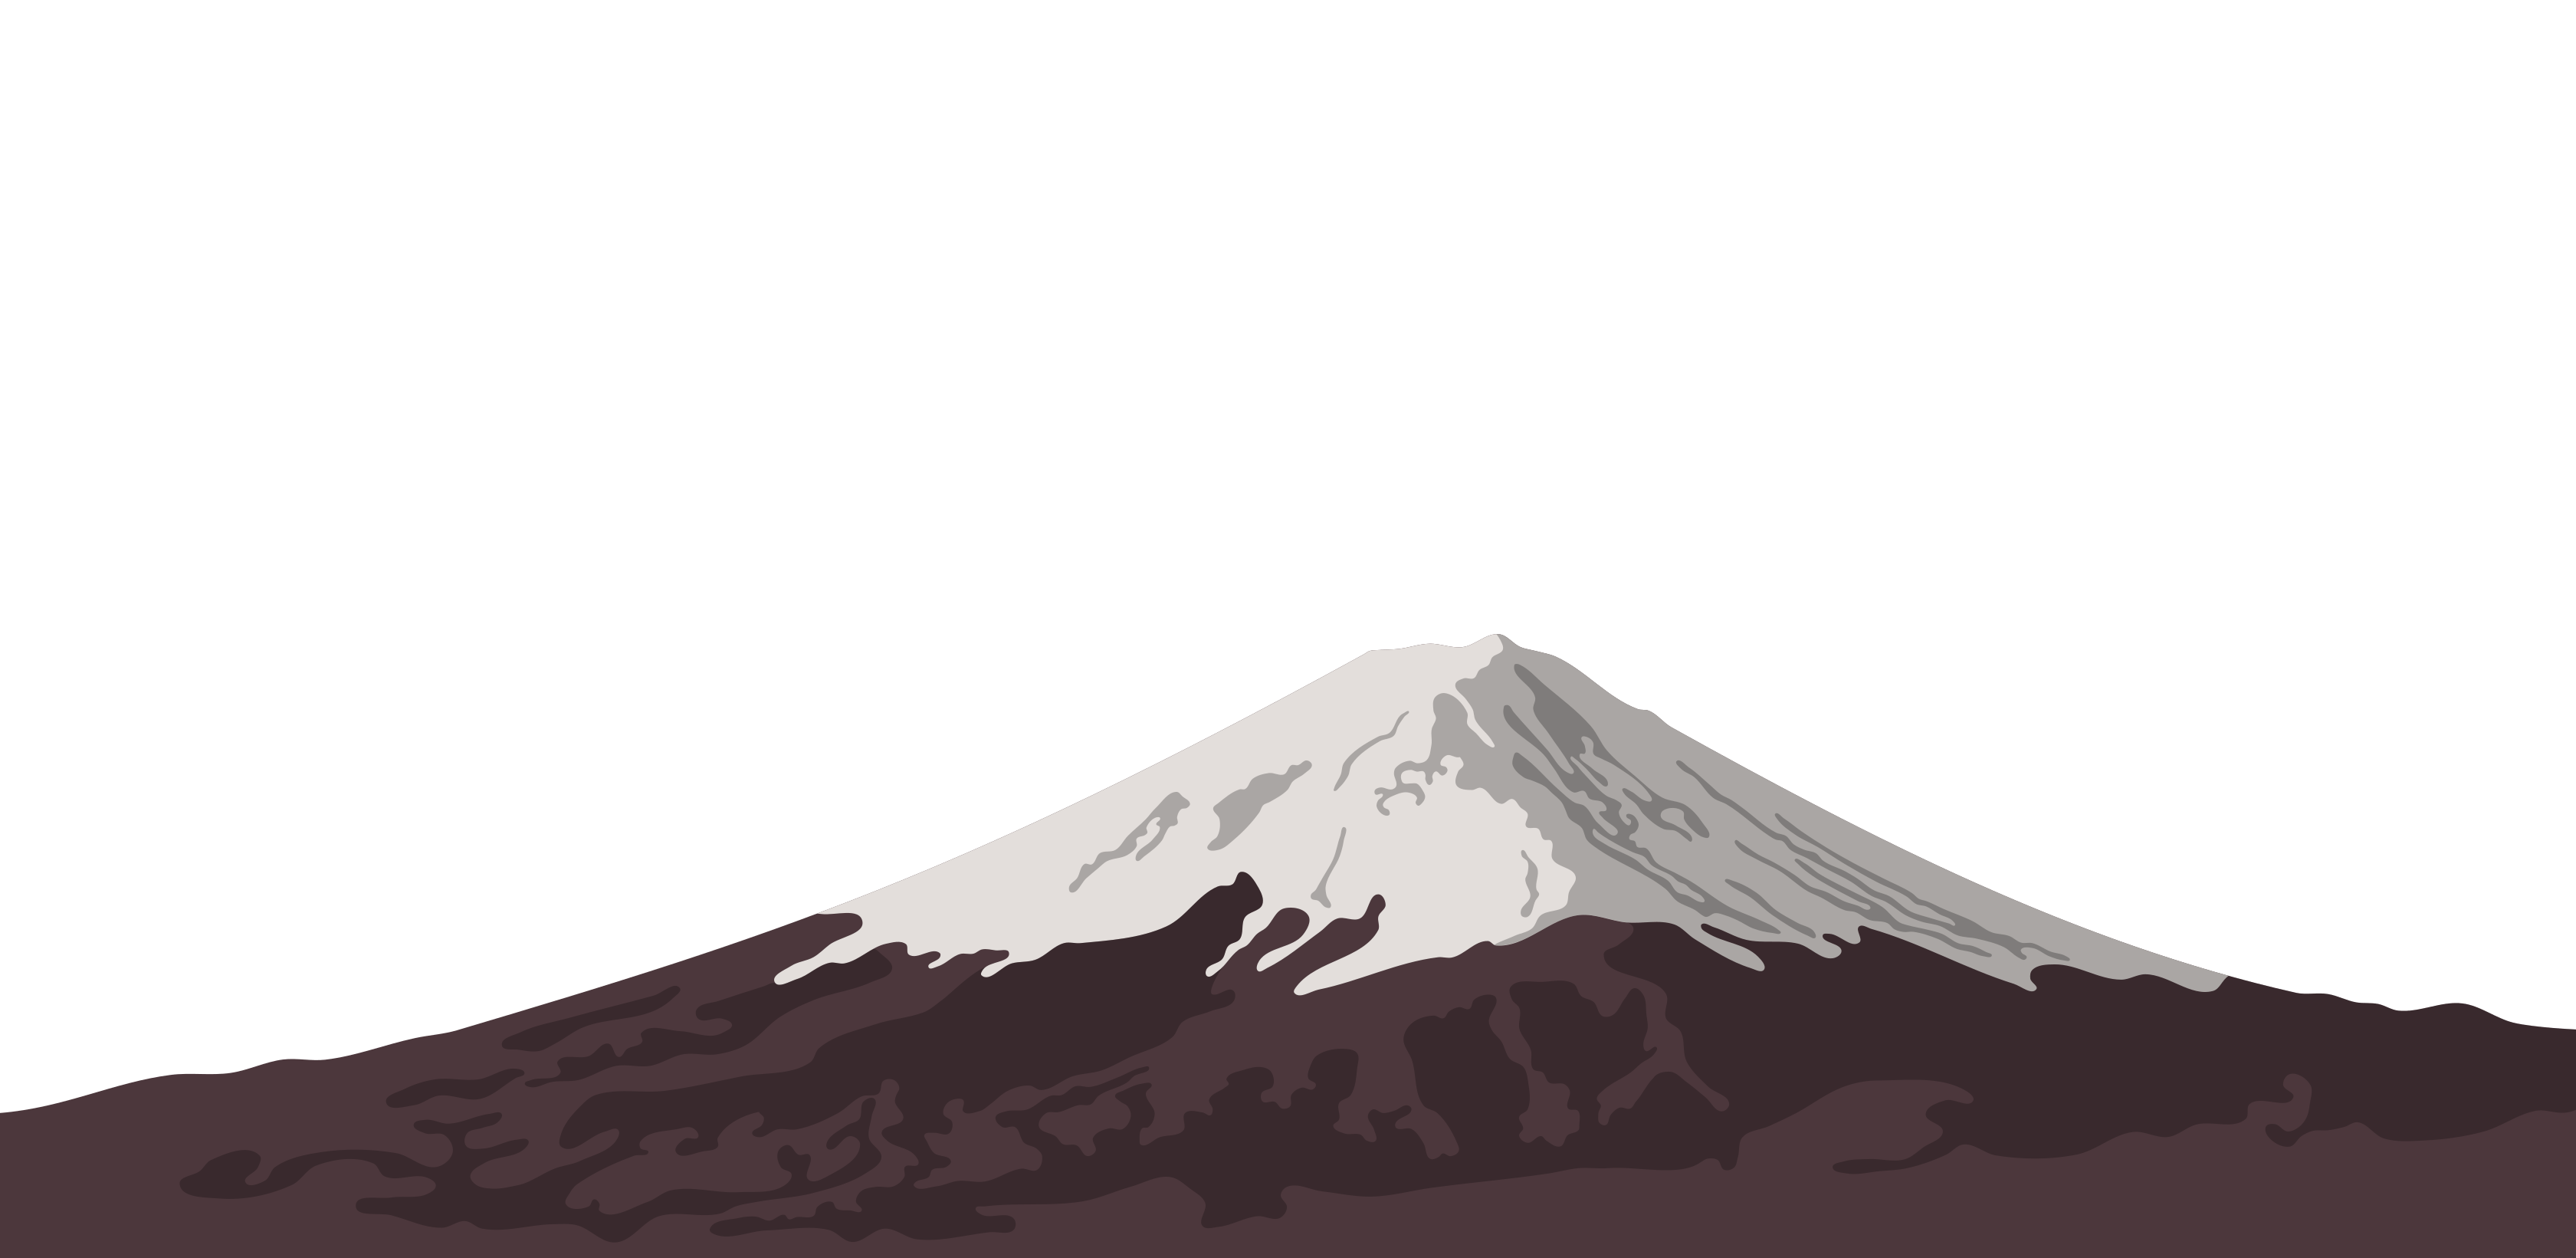 3d Wallpaper Making Software Free Download Teeworlds Mount Fuji By Android272 On Deviantart